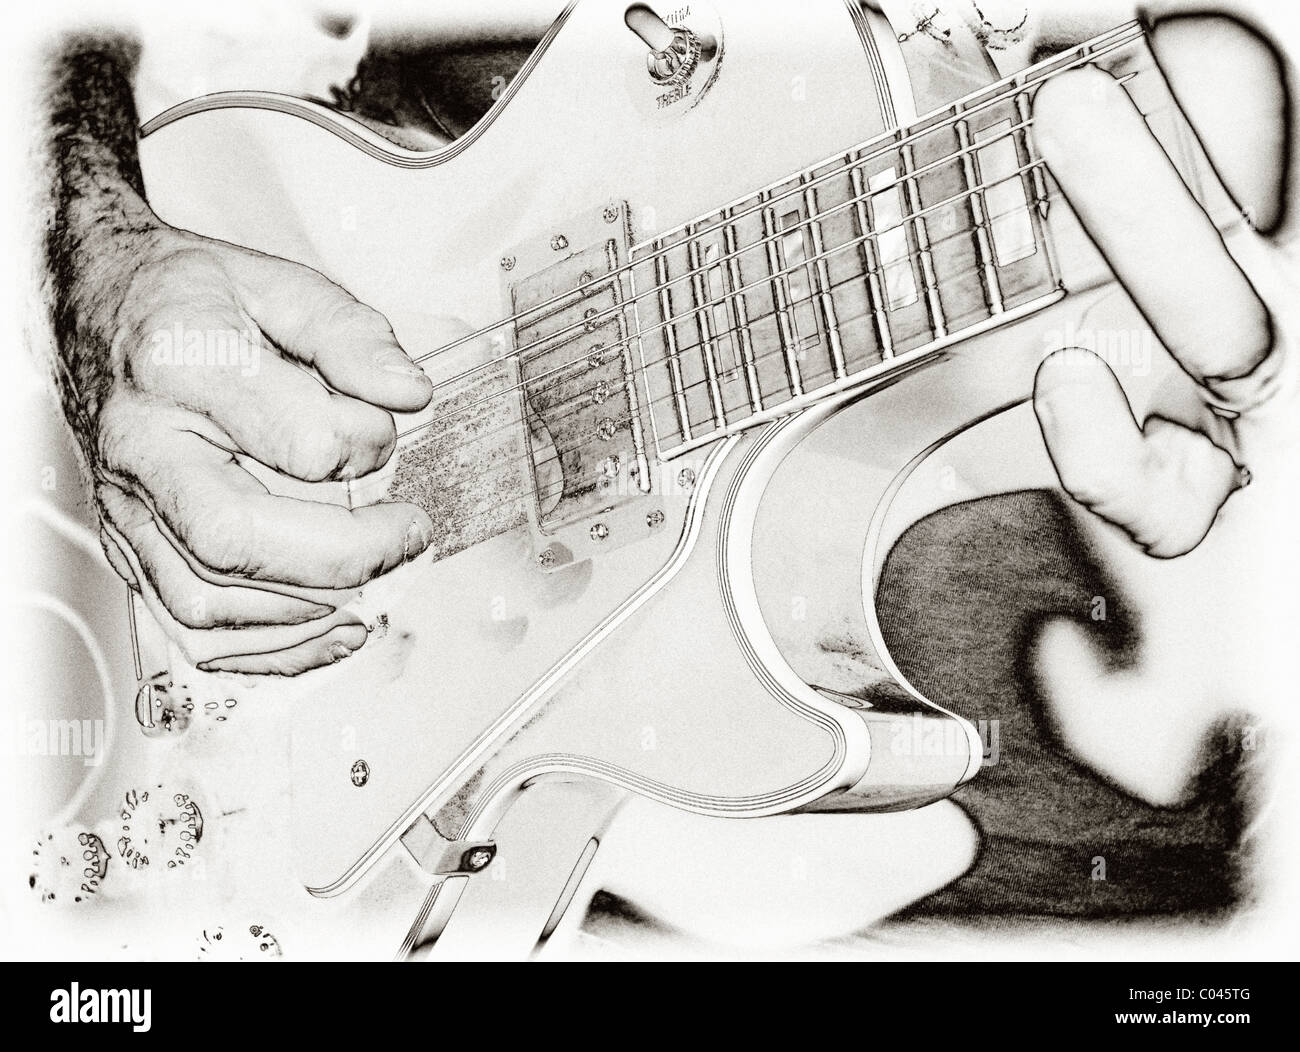 Closeup of a guitarist playing an electric guitar with solarised black and white effect - Stock Image